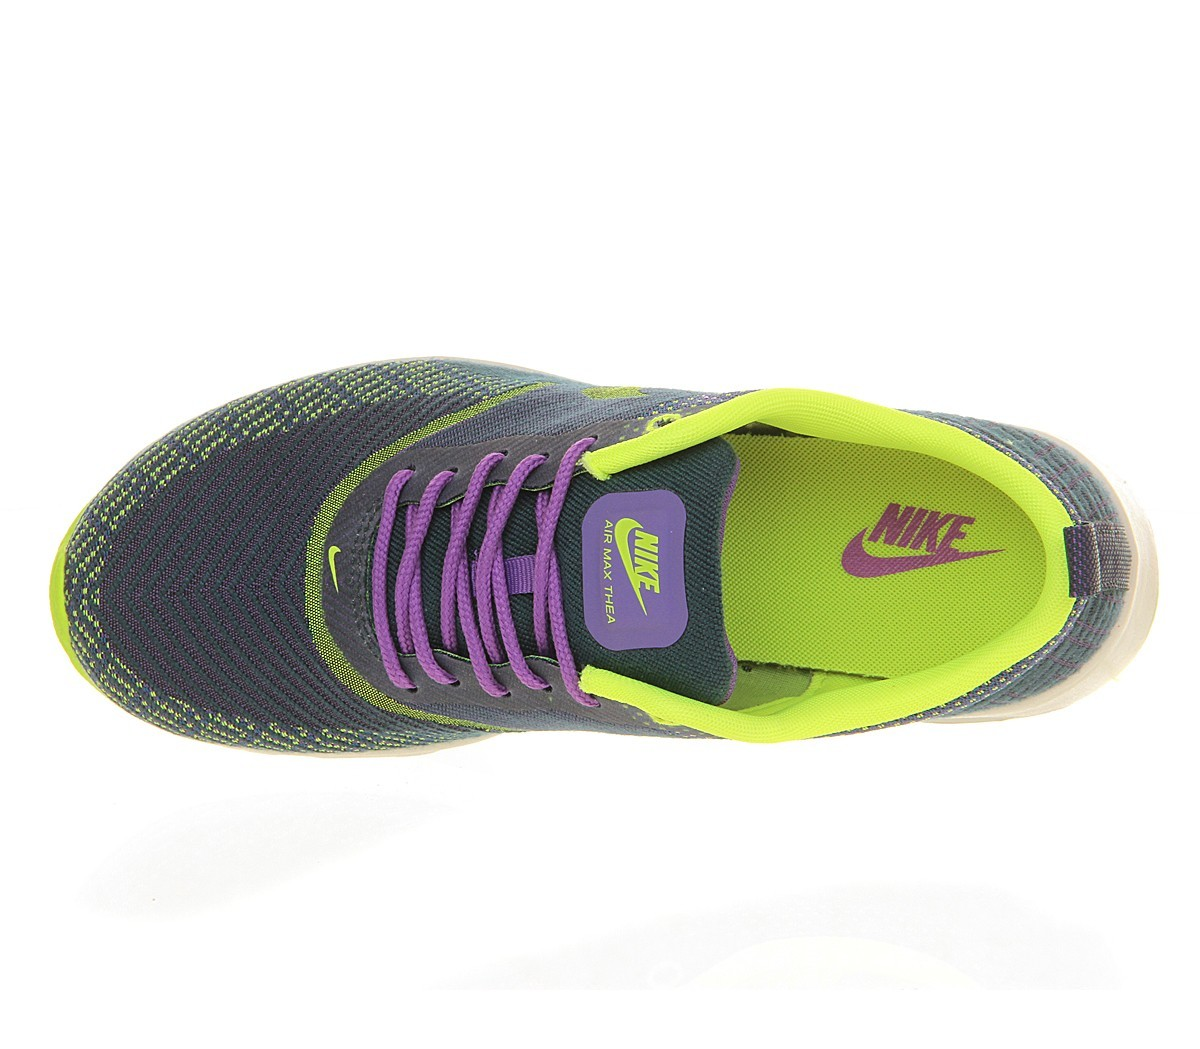 Nike Air Max Thea Hyper Grape Jacquard Homme Privee Style unique - Nike Air Max Thea Hyper Grape Jacquard Homme Privee Style unique-01-2